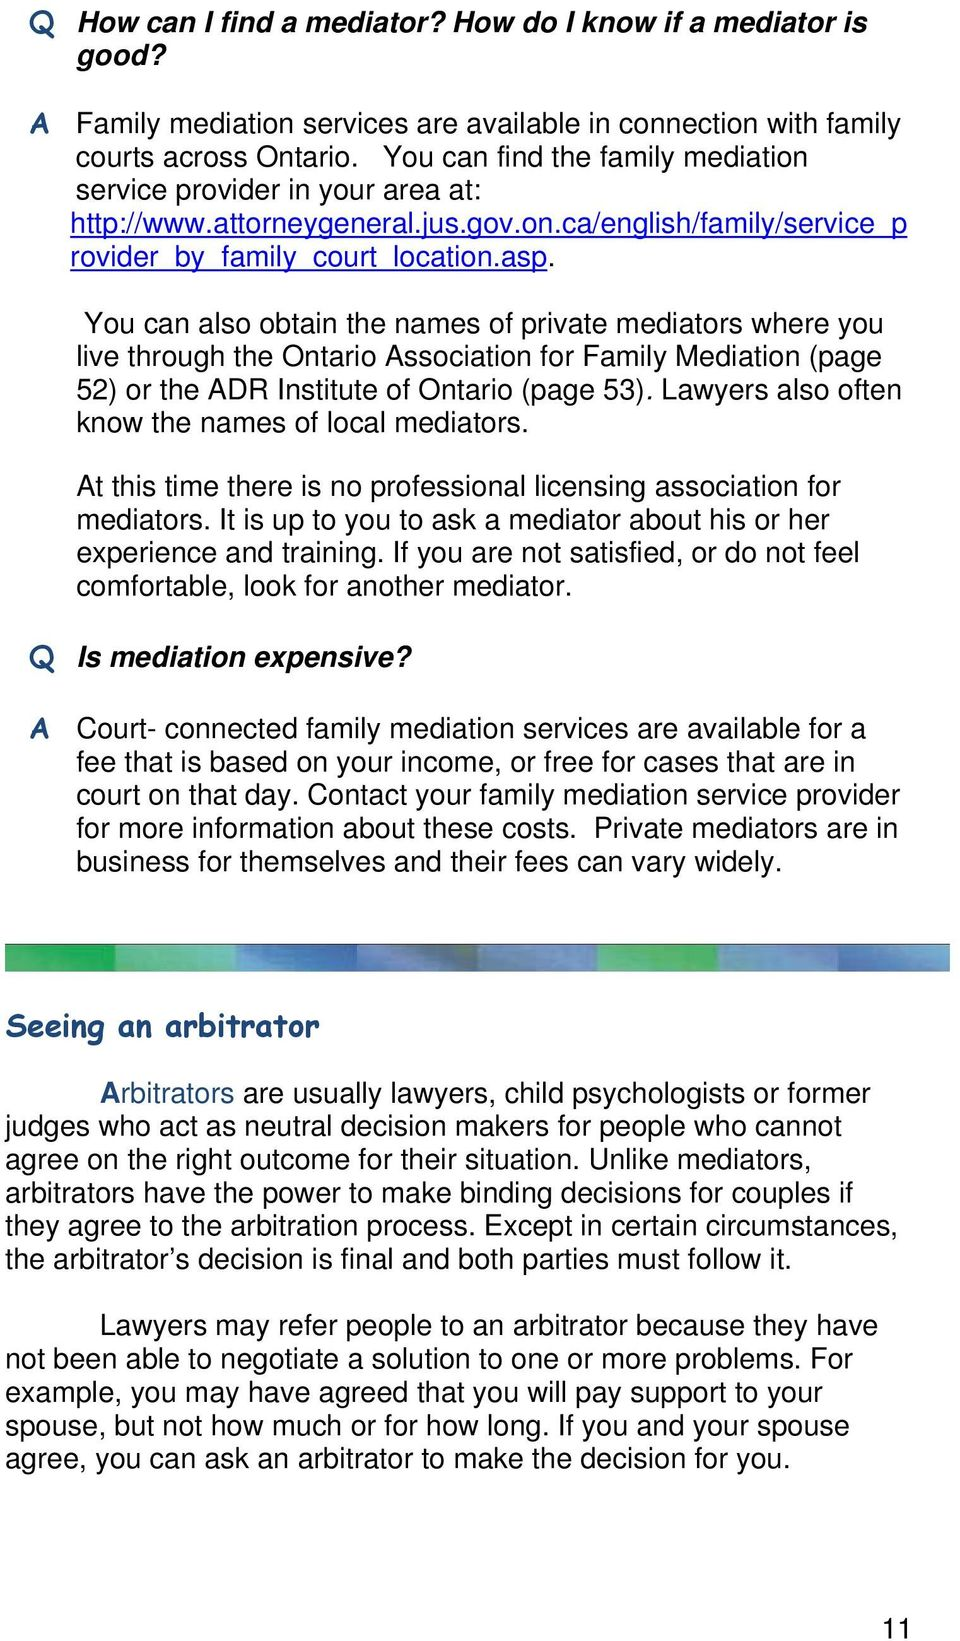 You can also obtain the names of private mediators where you live through the Ontario Association for Family Mediation (page 52) or the ADR Institute of Ontario (page 53).